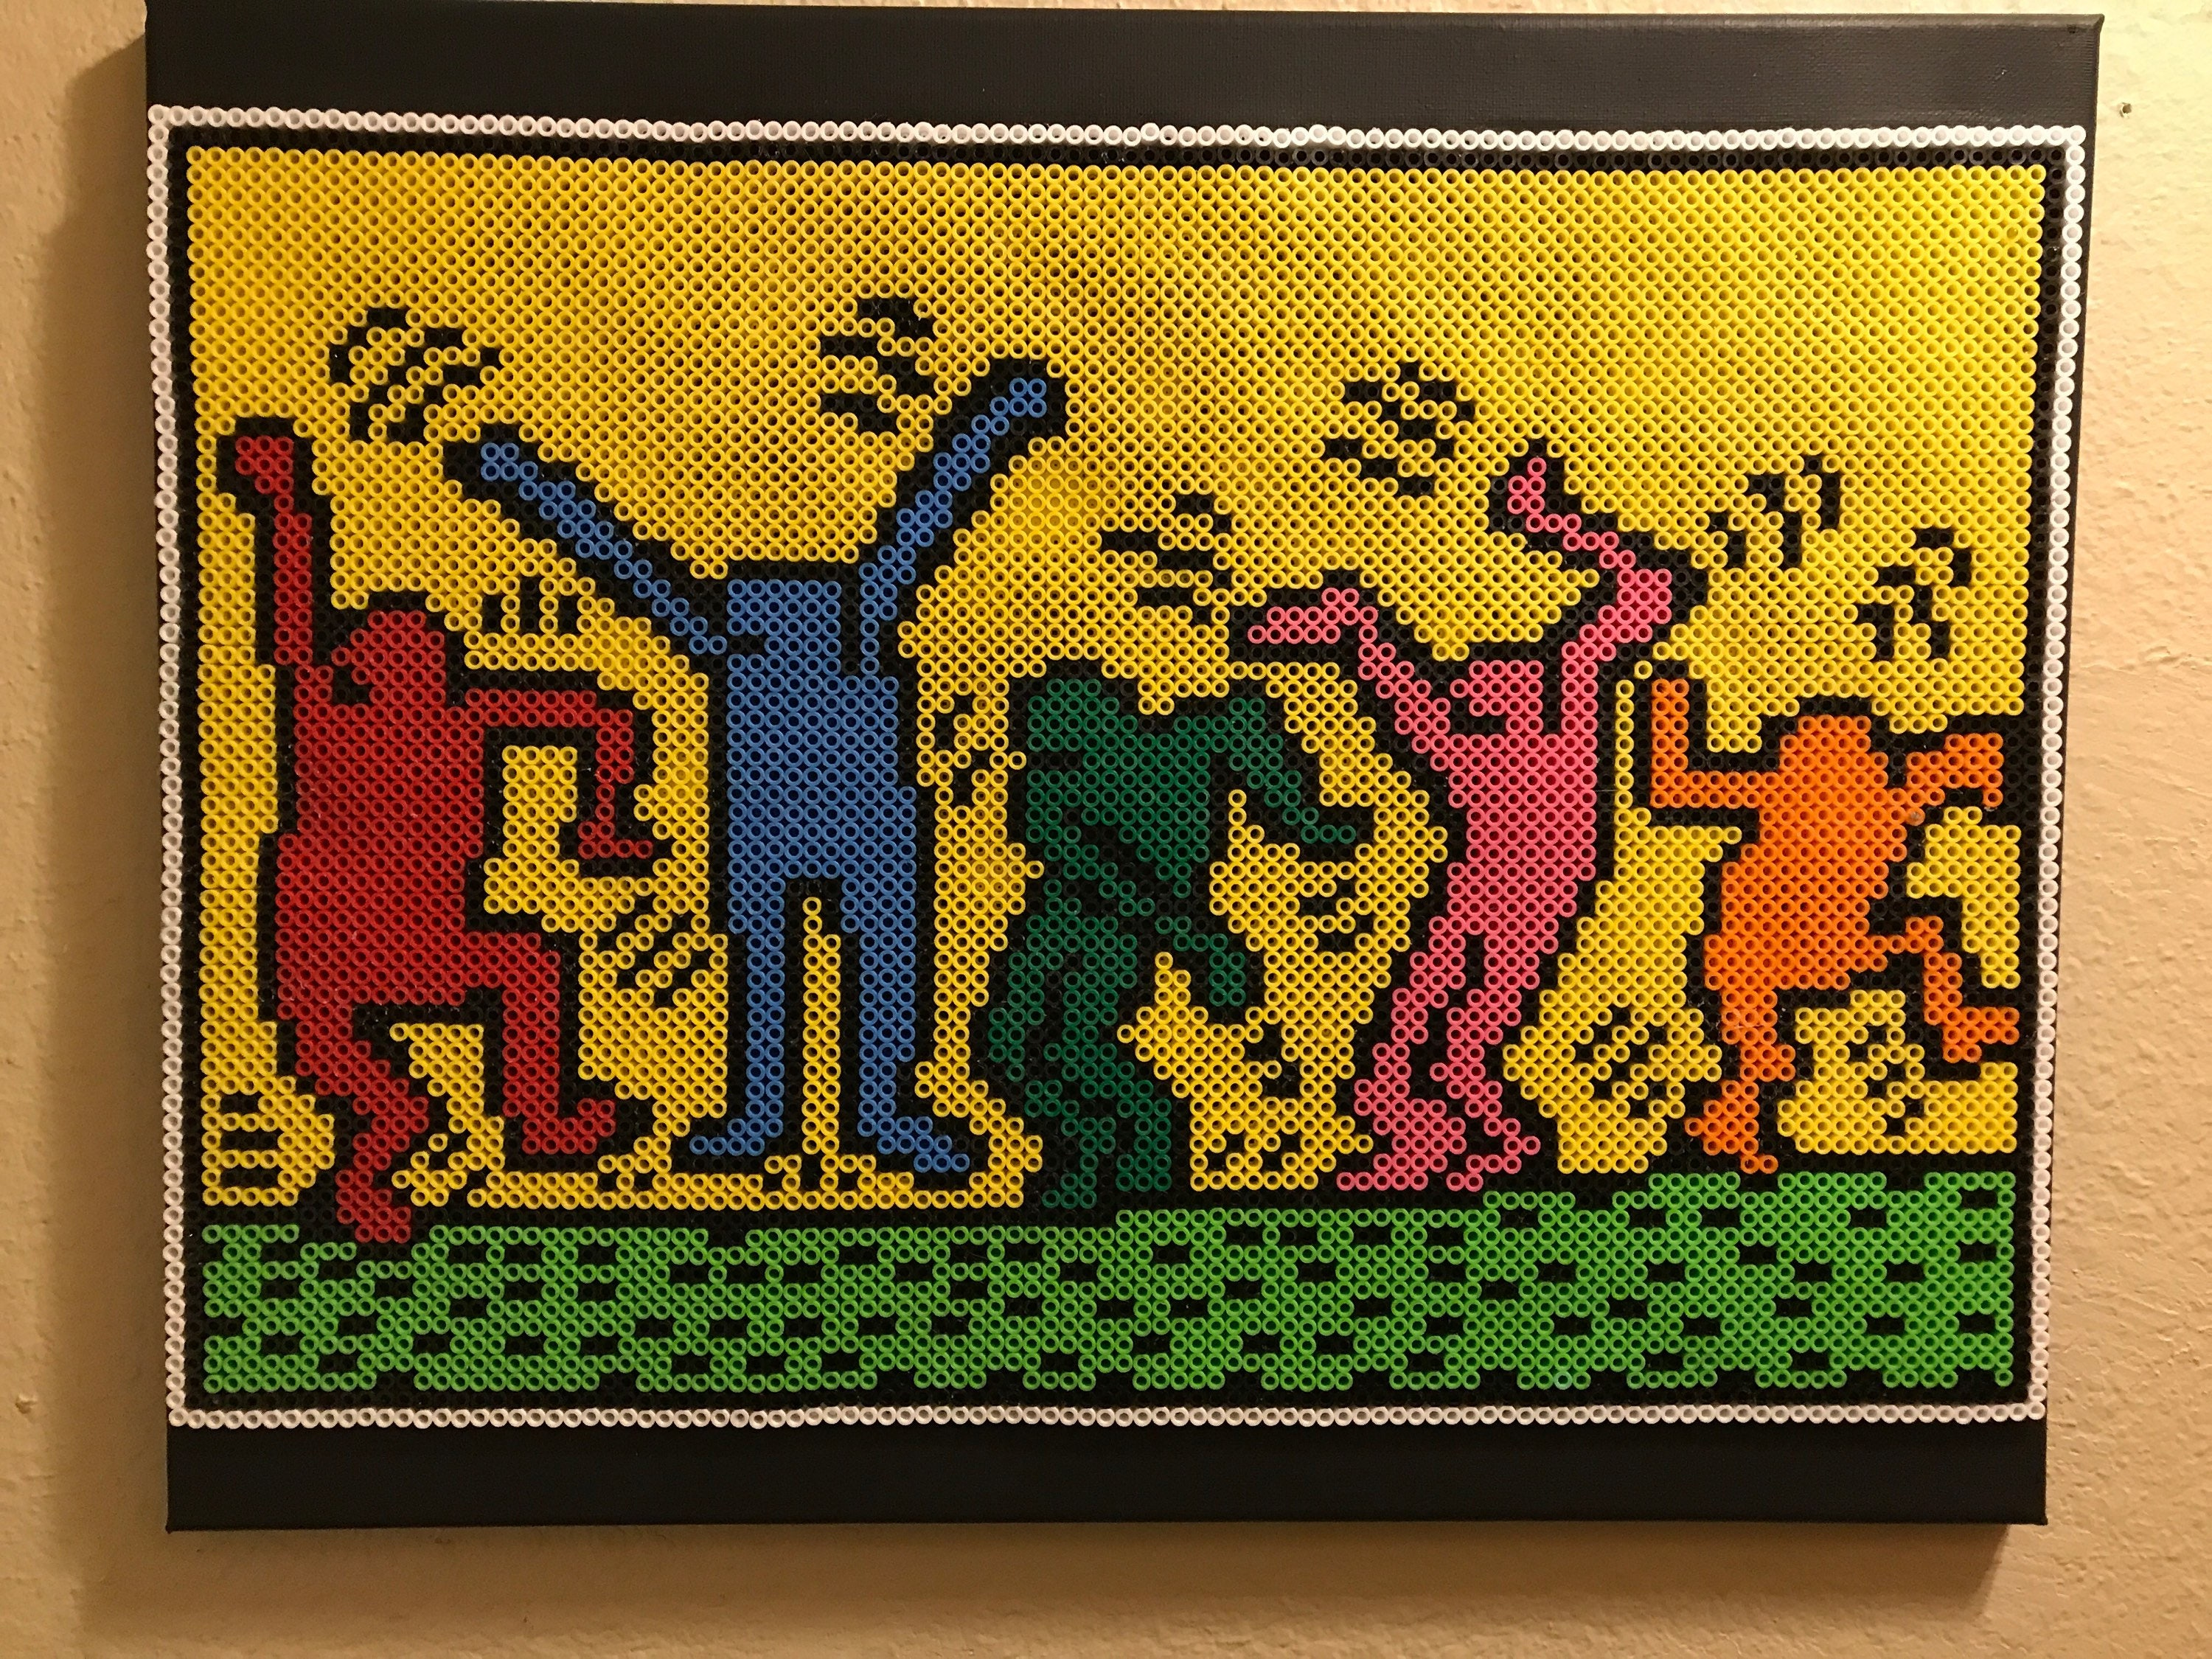 Keith Haring tribute made from thousands of Perler beads